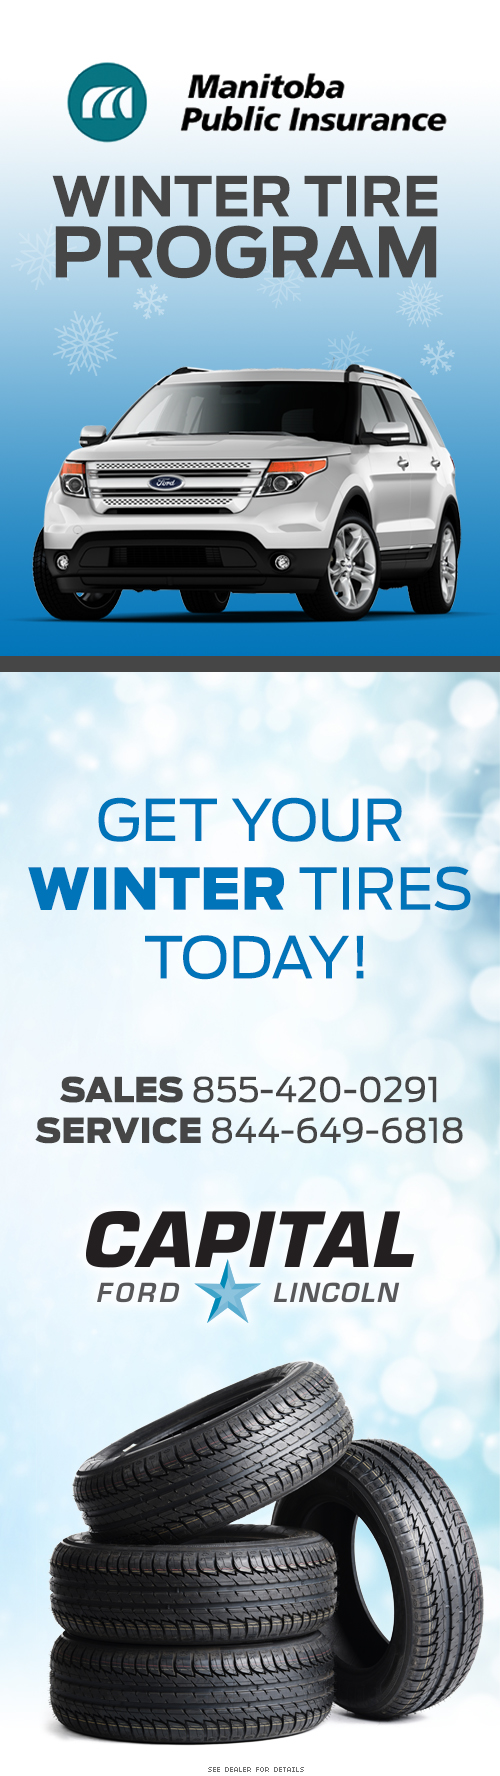 Winter Tires Progam